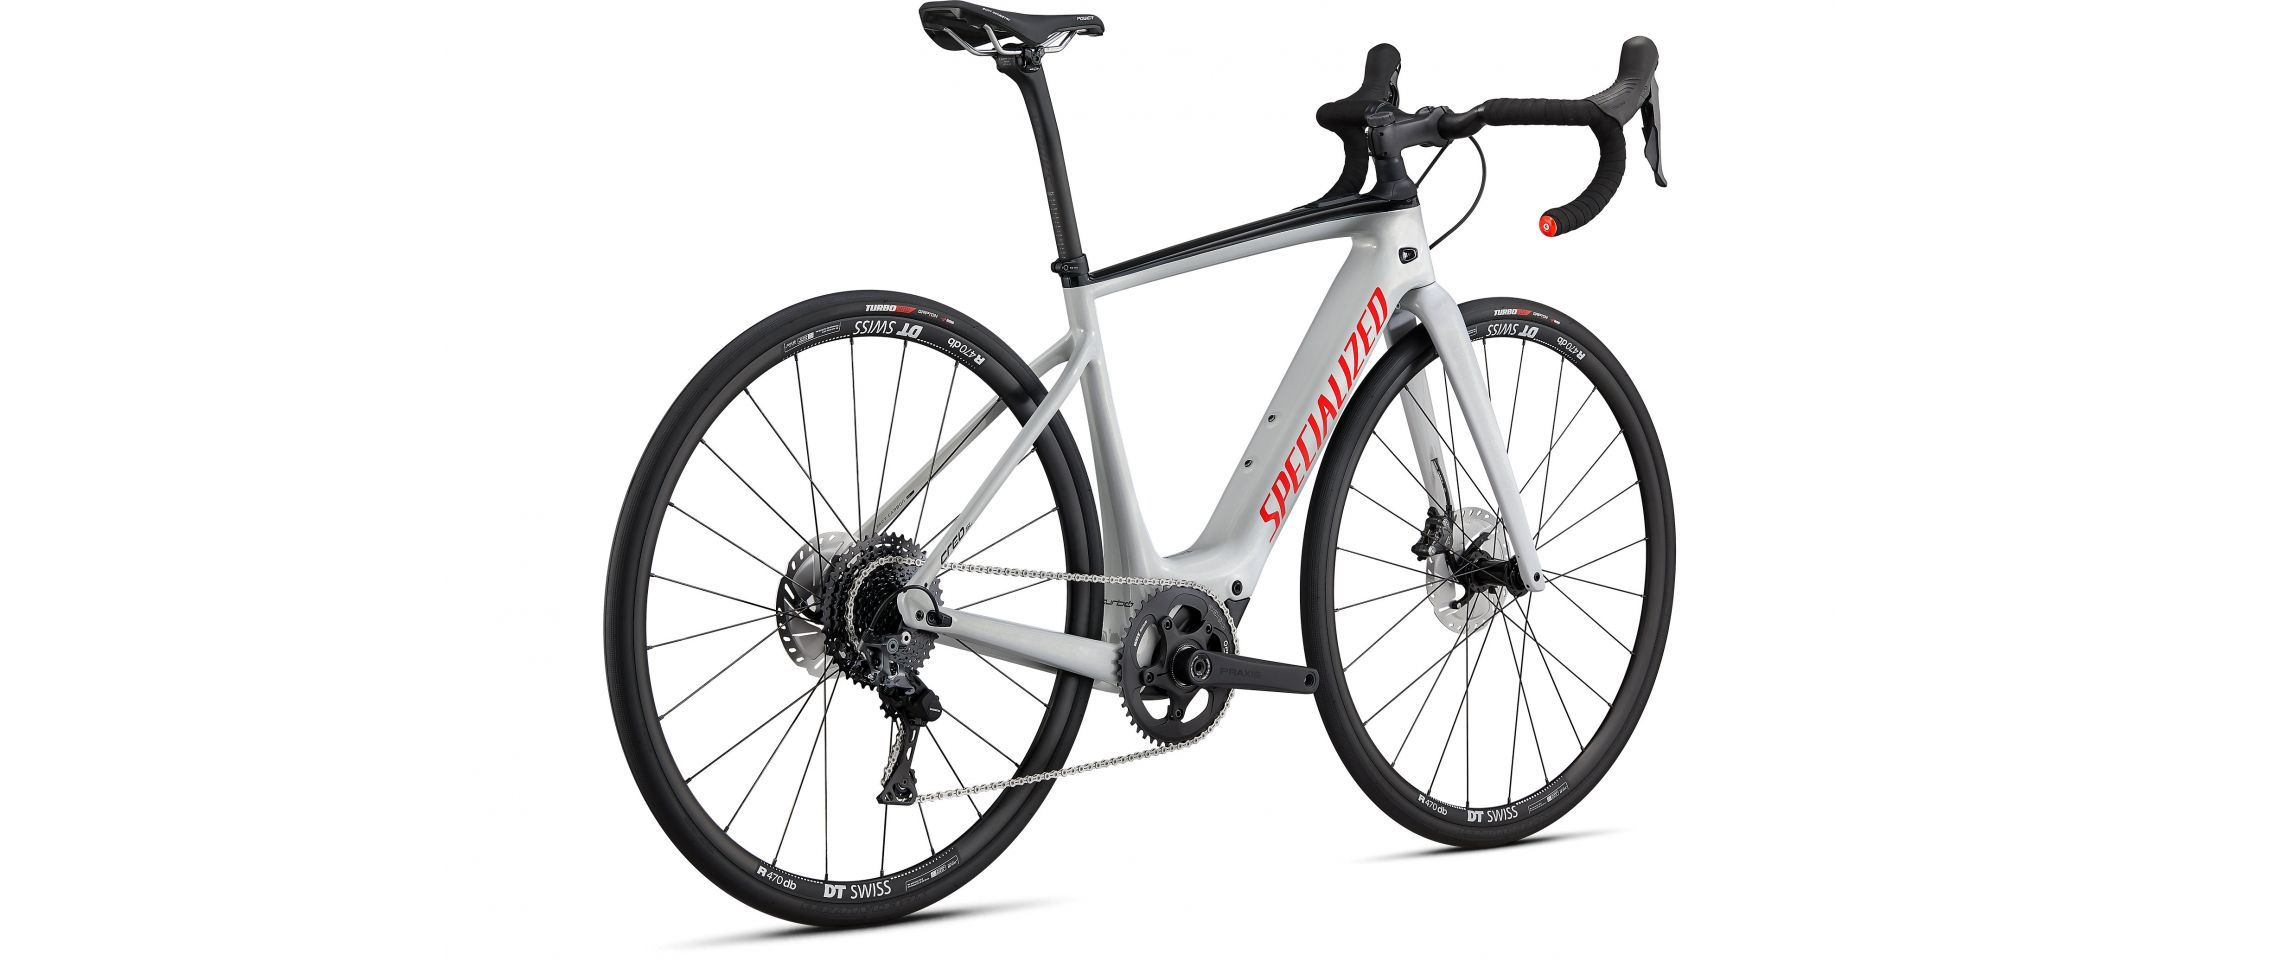 Creo SL Comp Carbon Bicicleta Electrica Carretera Specialized 2020 Gloss Dove Gray / Gold Ghost Pearl / Rocket Red 3 IBKBike.es